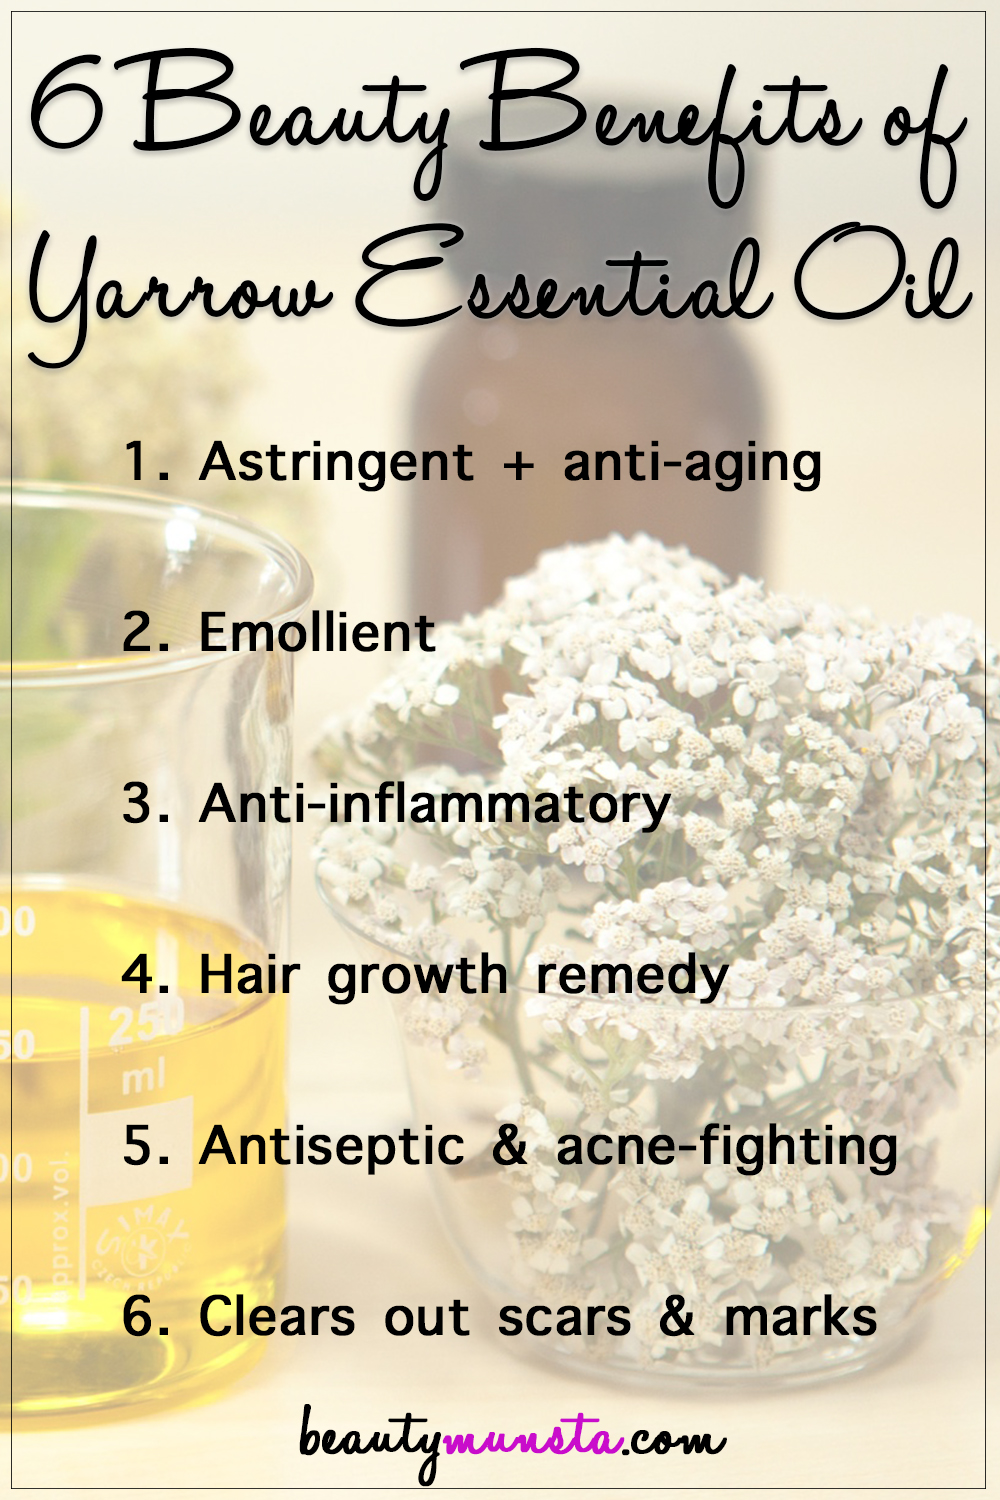 Have you heard about the florally captivating yarrow? There are so many beauty benefits of yarrow essential oil that you should know about!